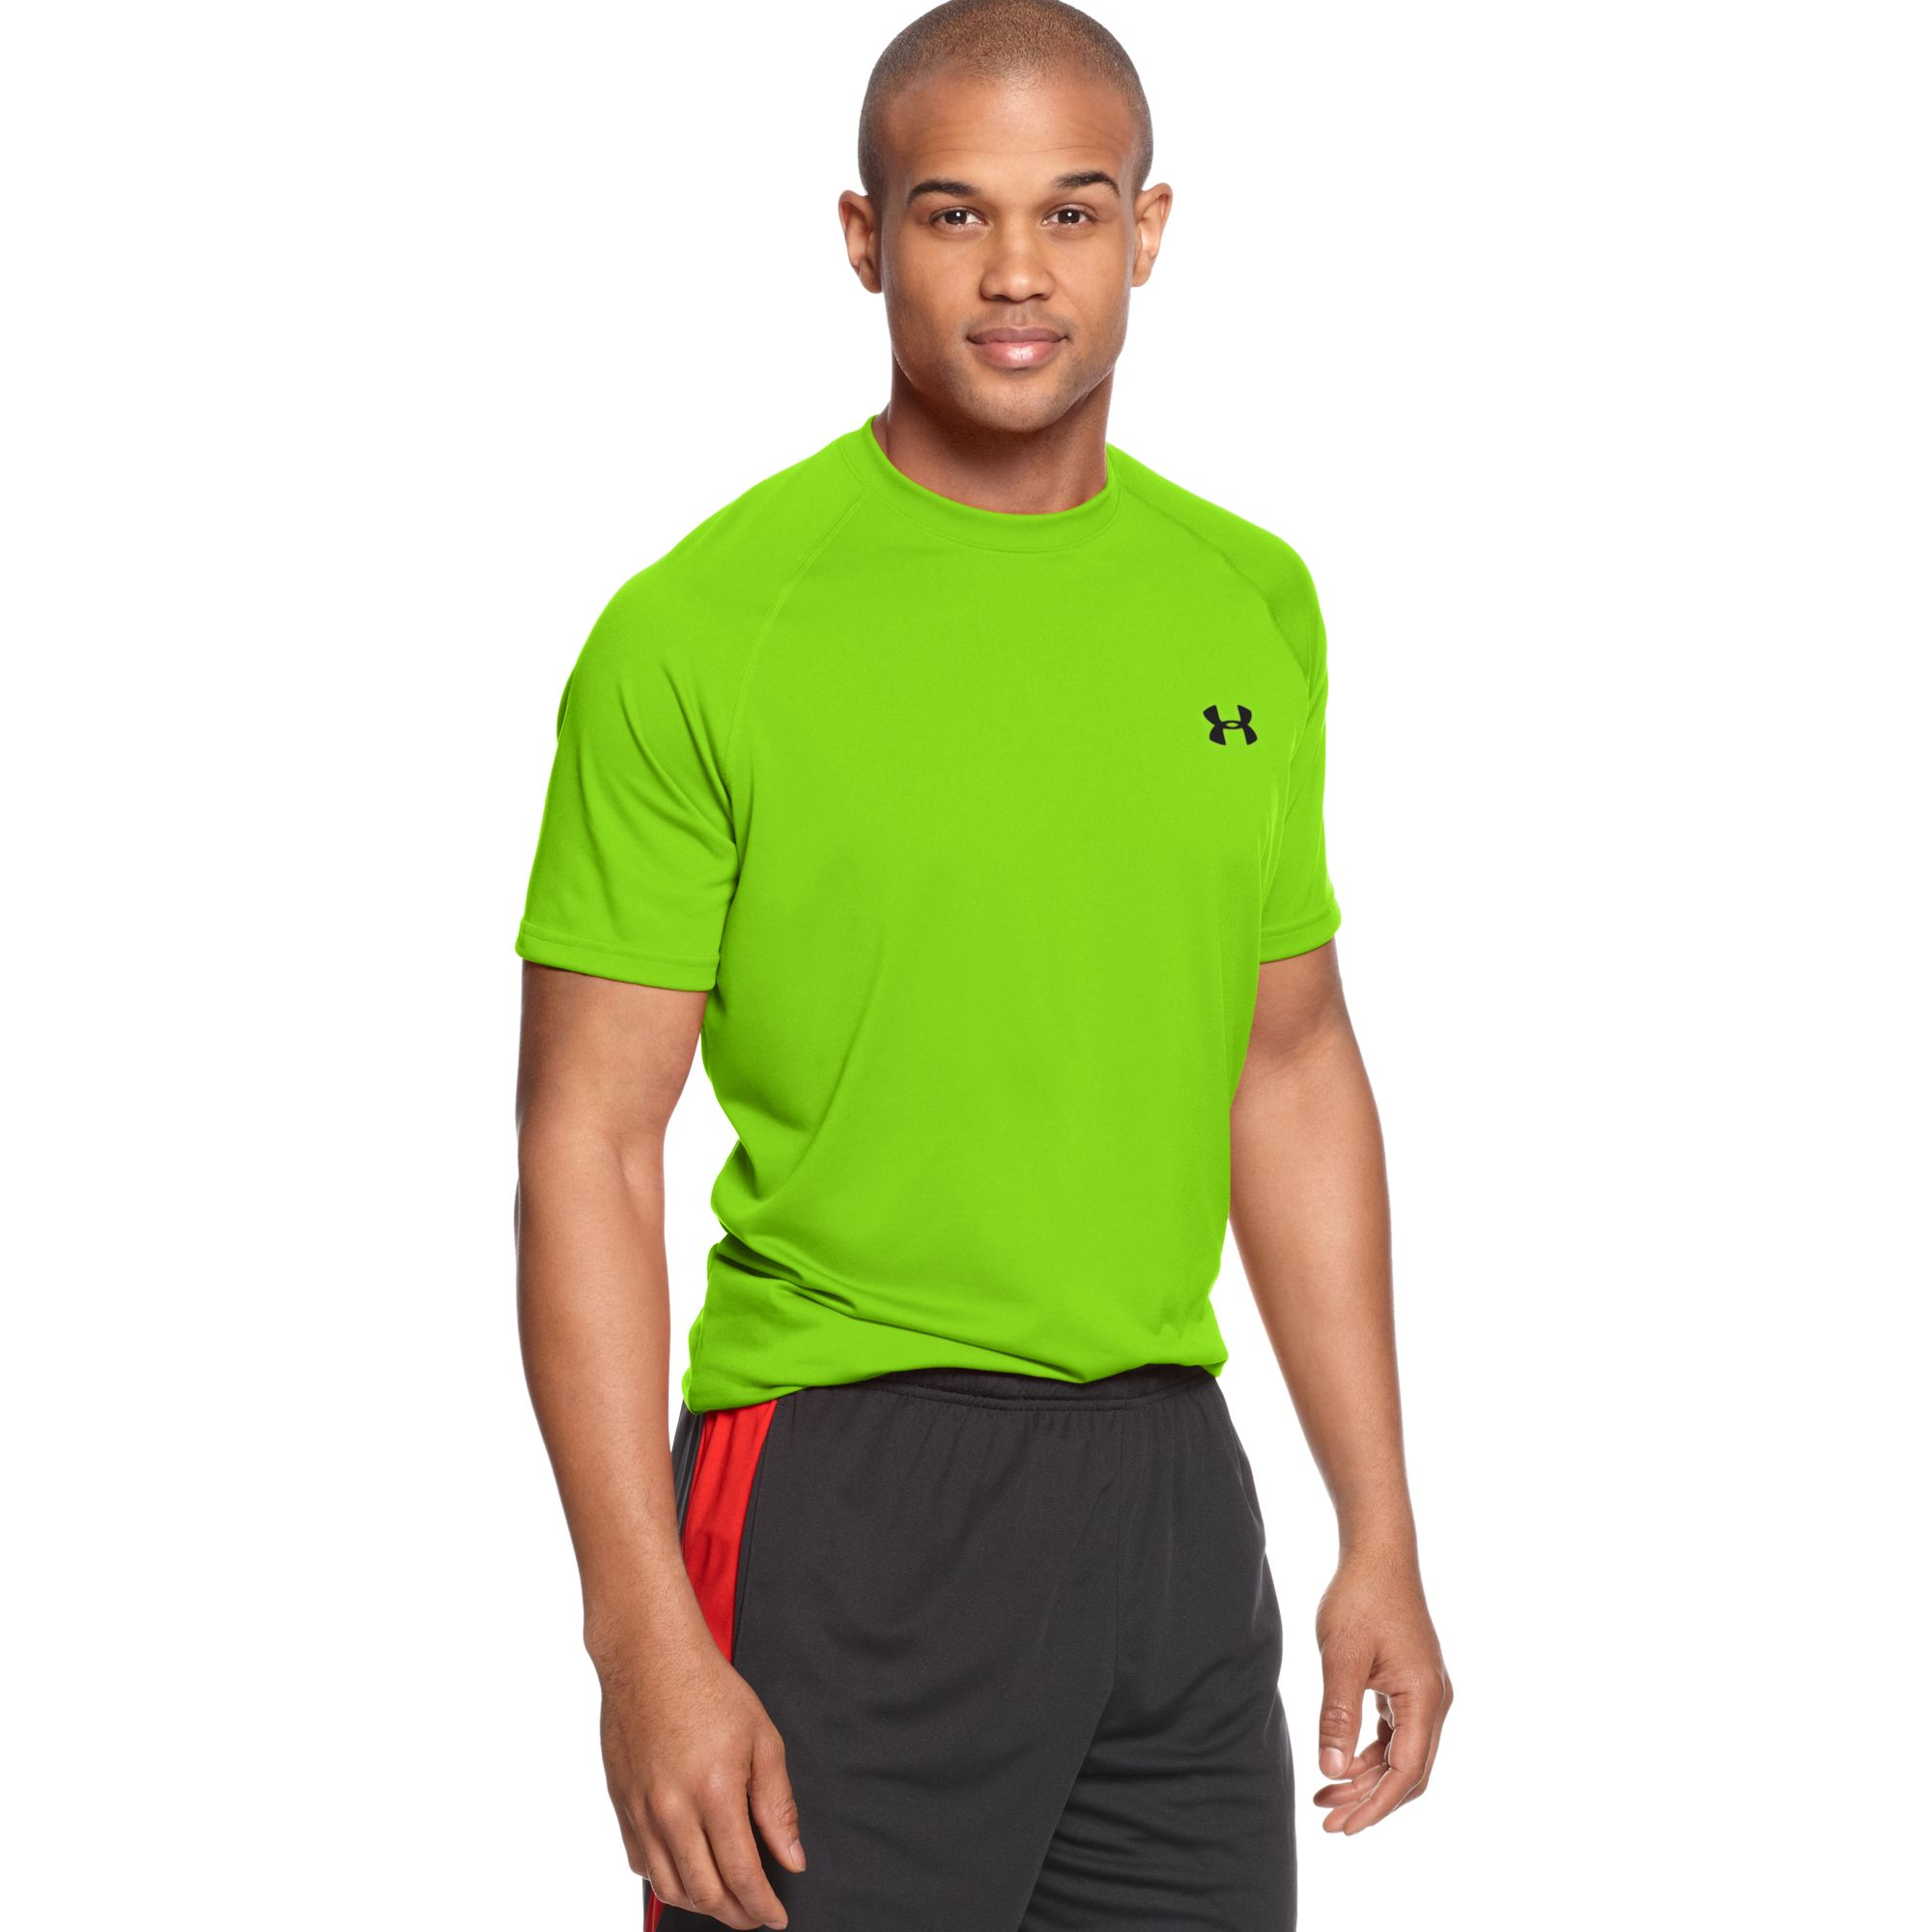 Under Armour 2015 Mens Ua Renegade Training Gloves Support: Under Armour Tech Short Sleeve Tshirt In Green For Men